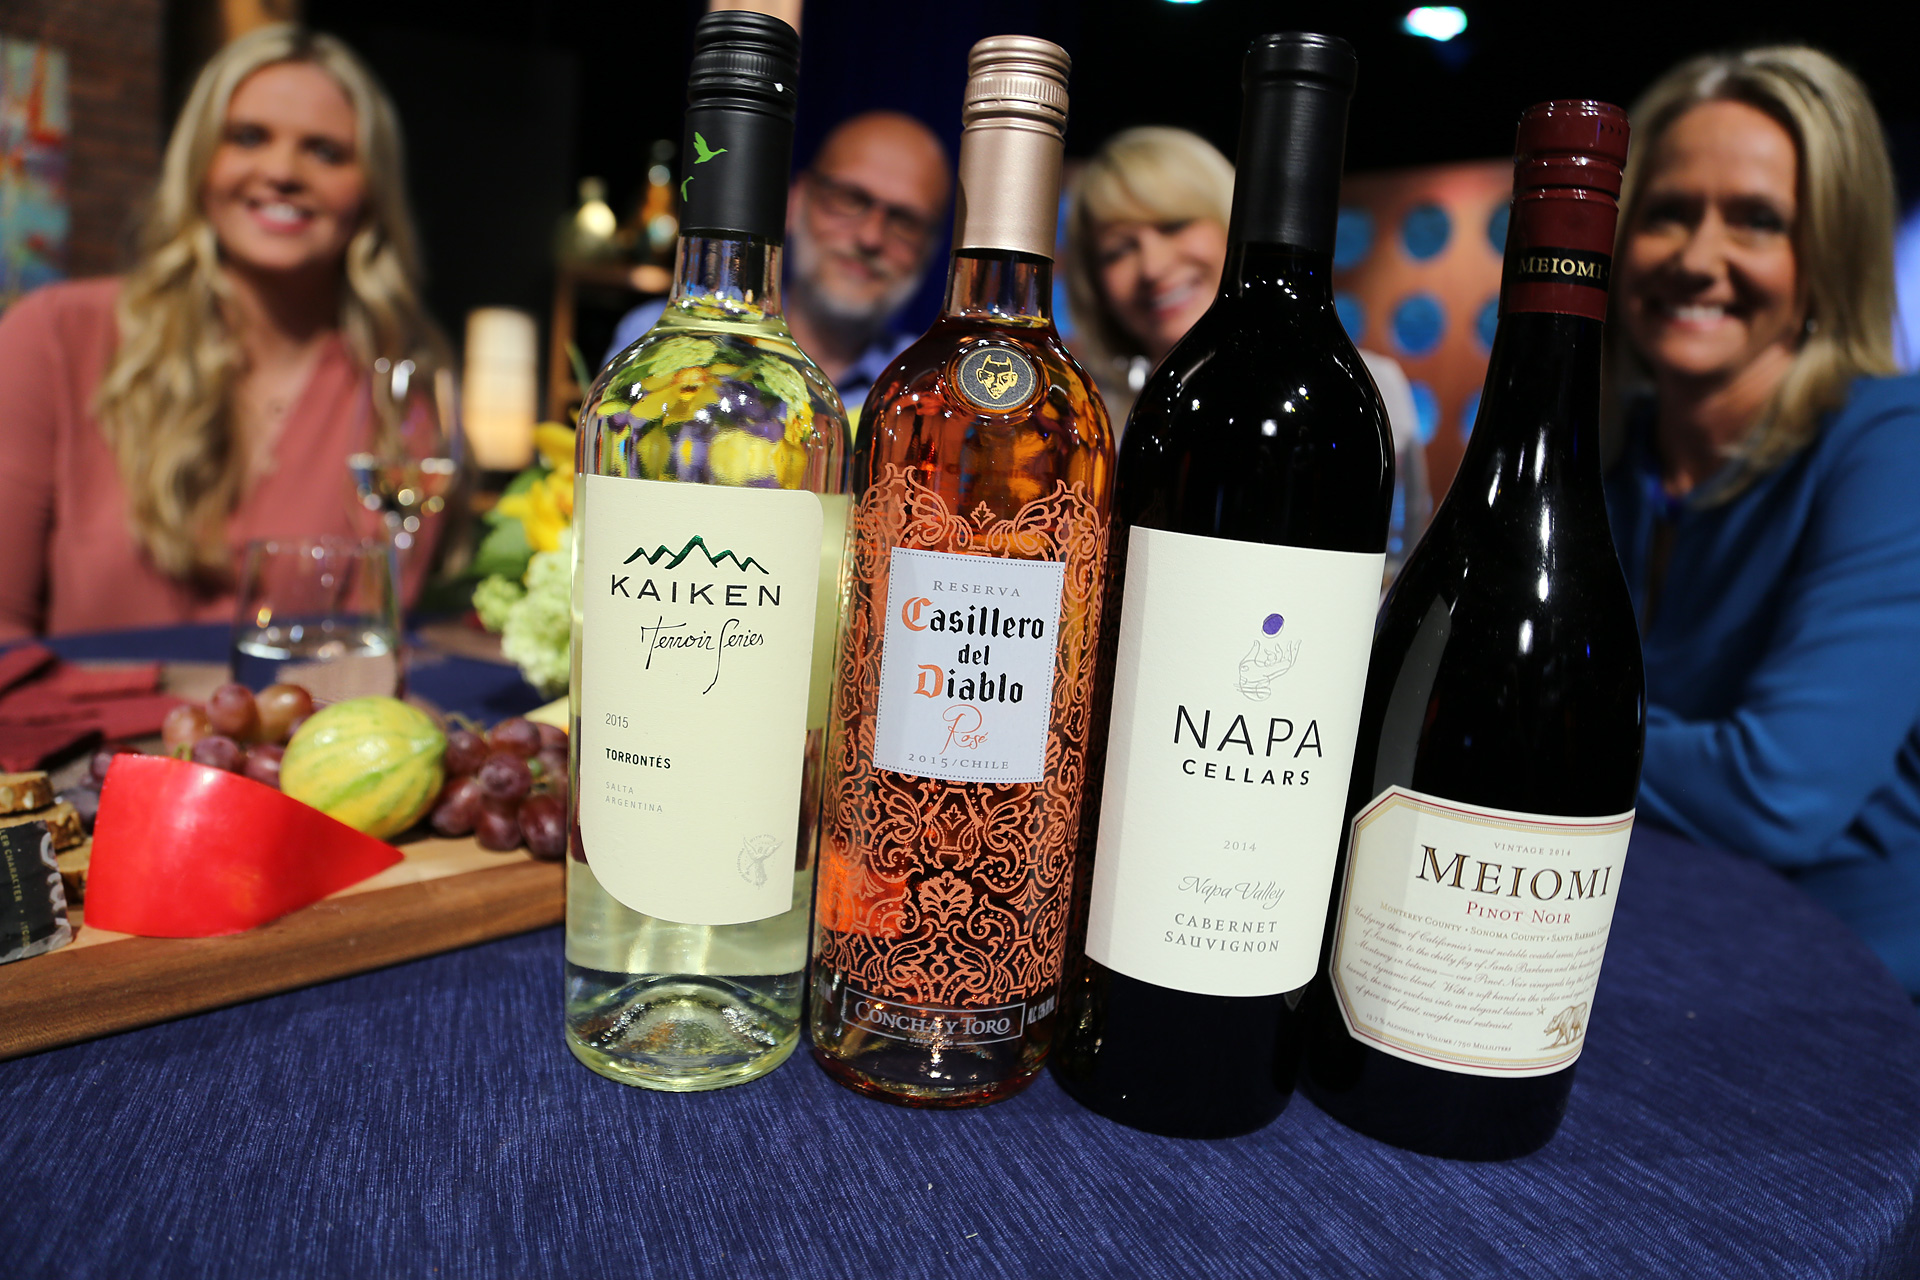 Wines that guests drank on the set of the twelfth episode of season 11.